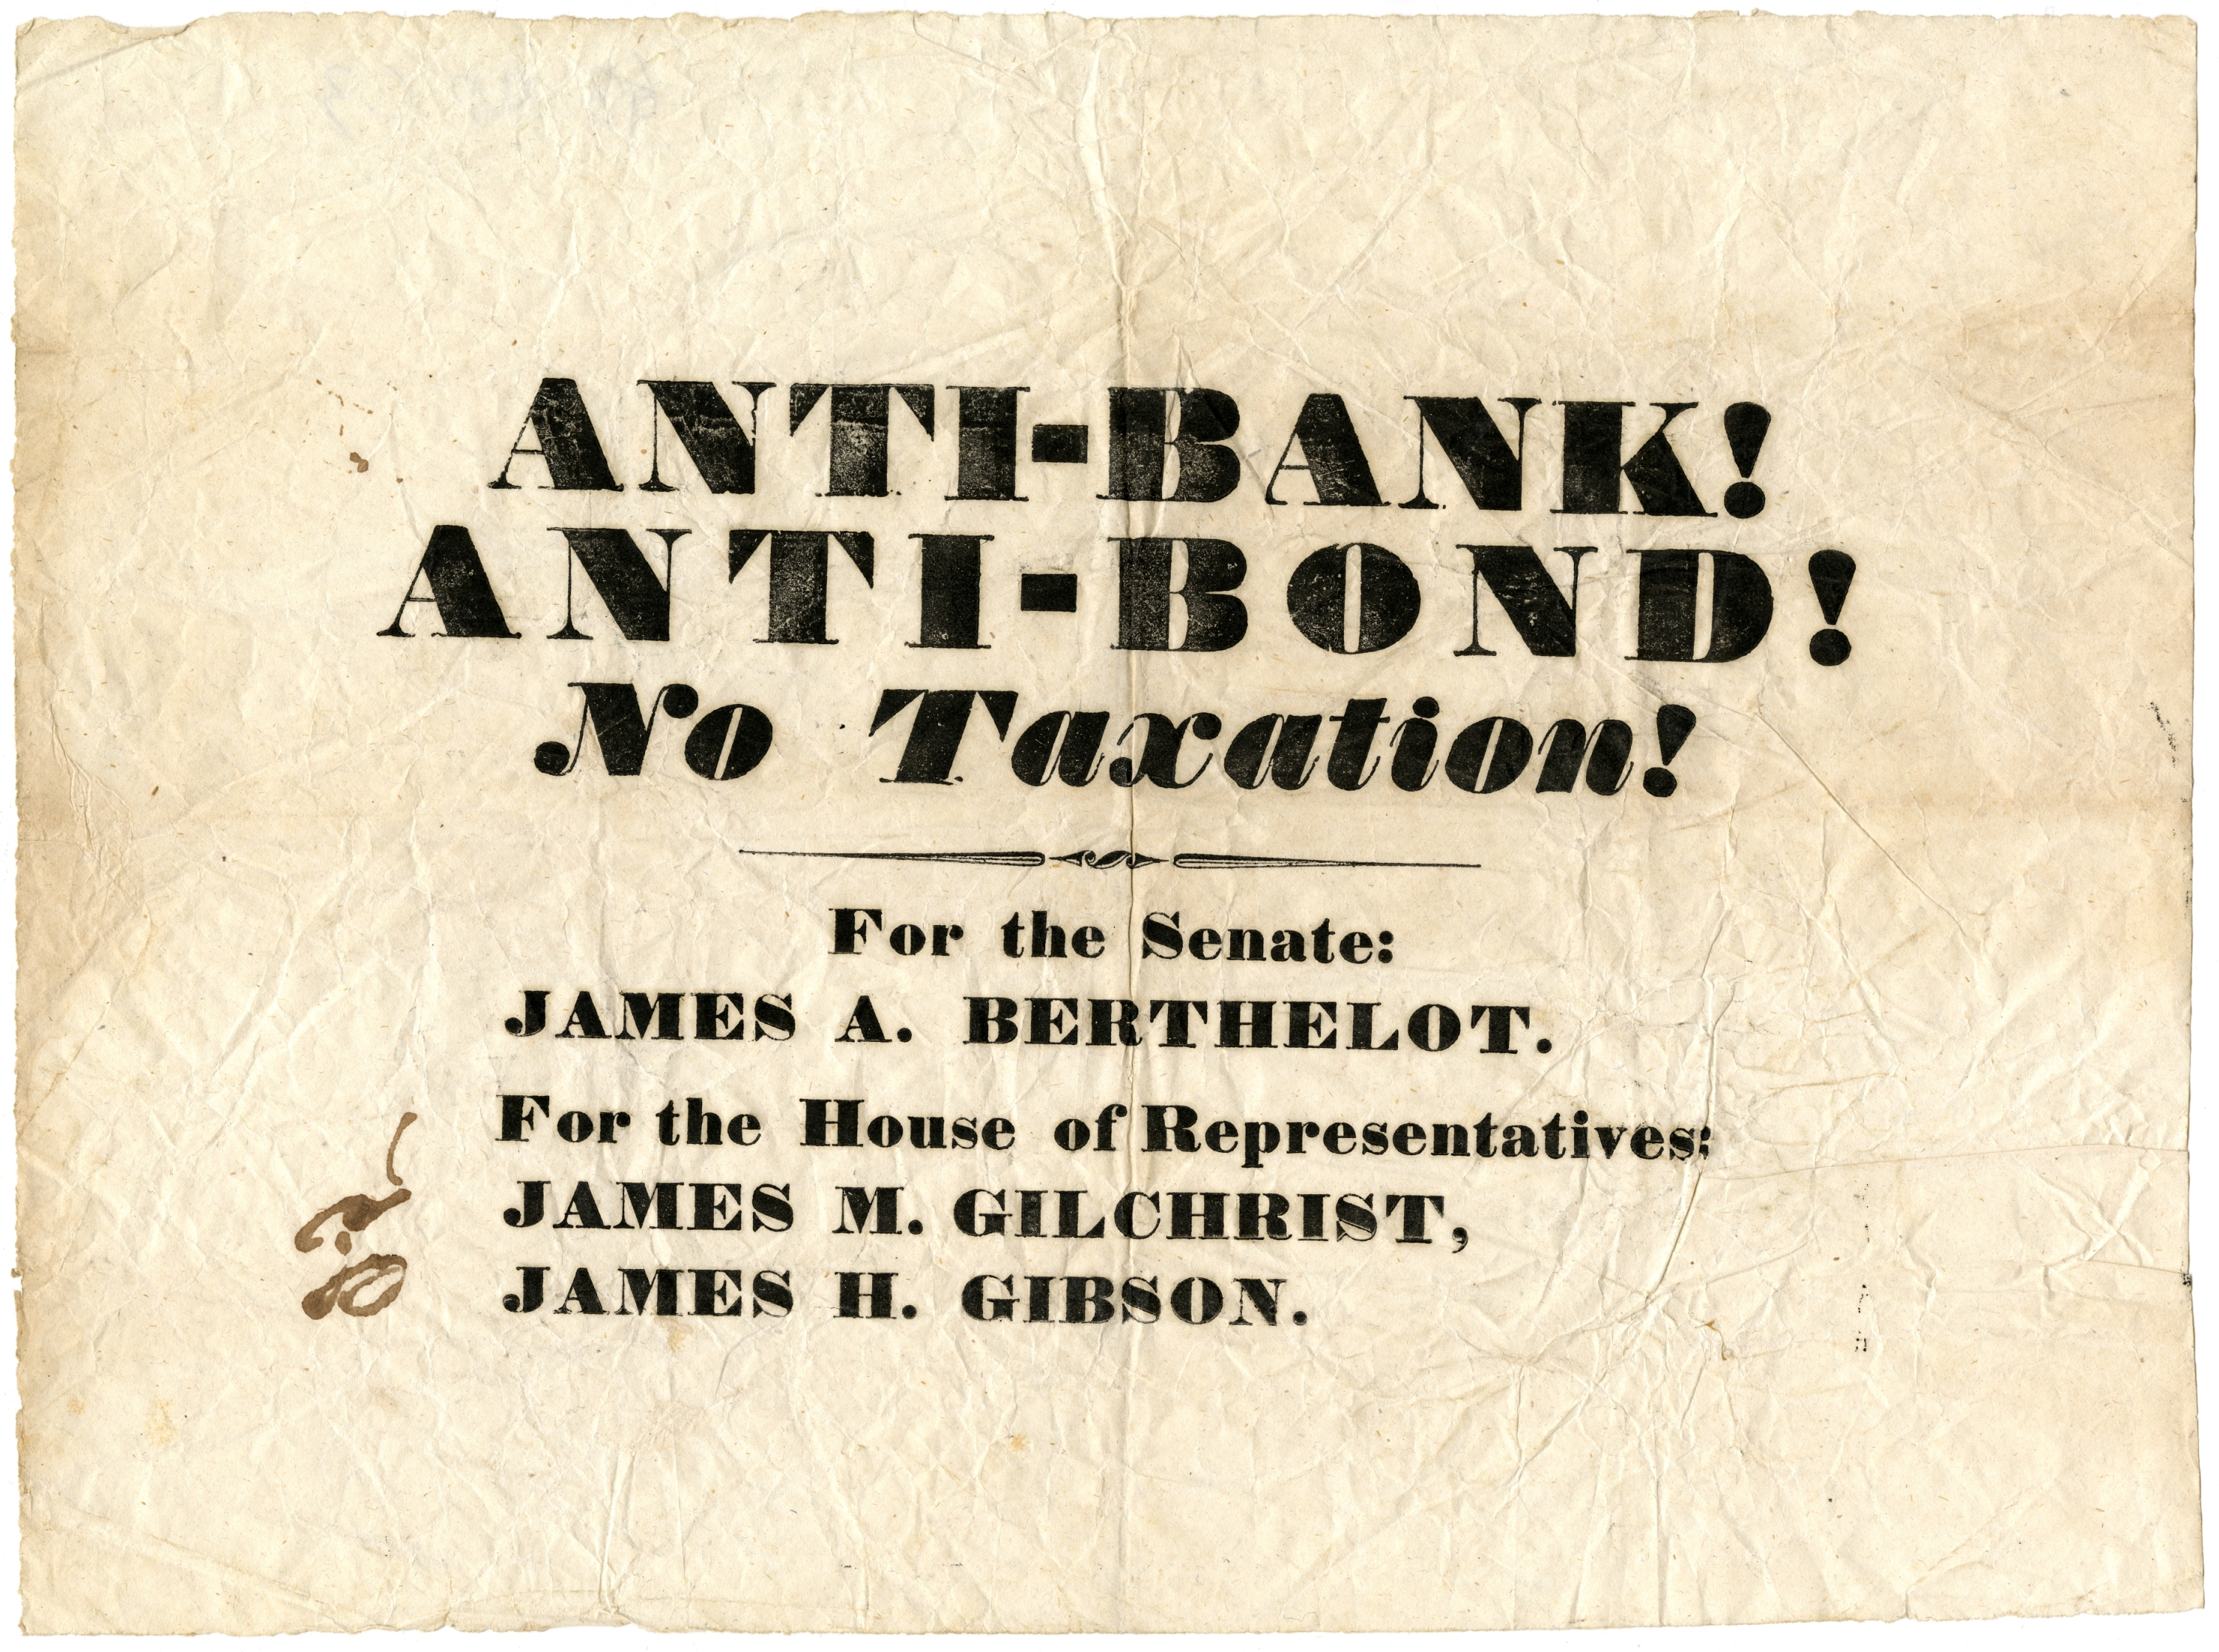 Anti-bank!, anti-bond!, no taxation!